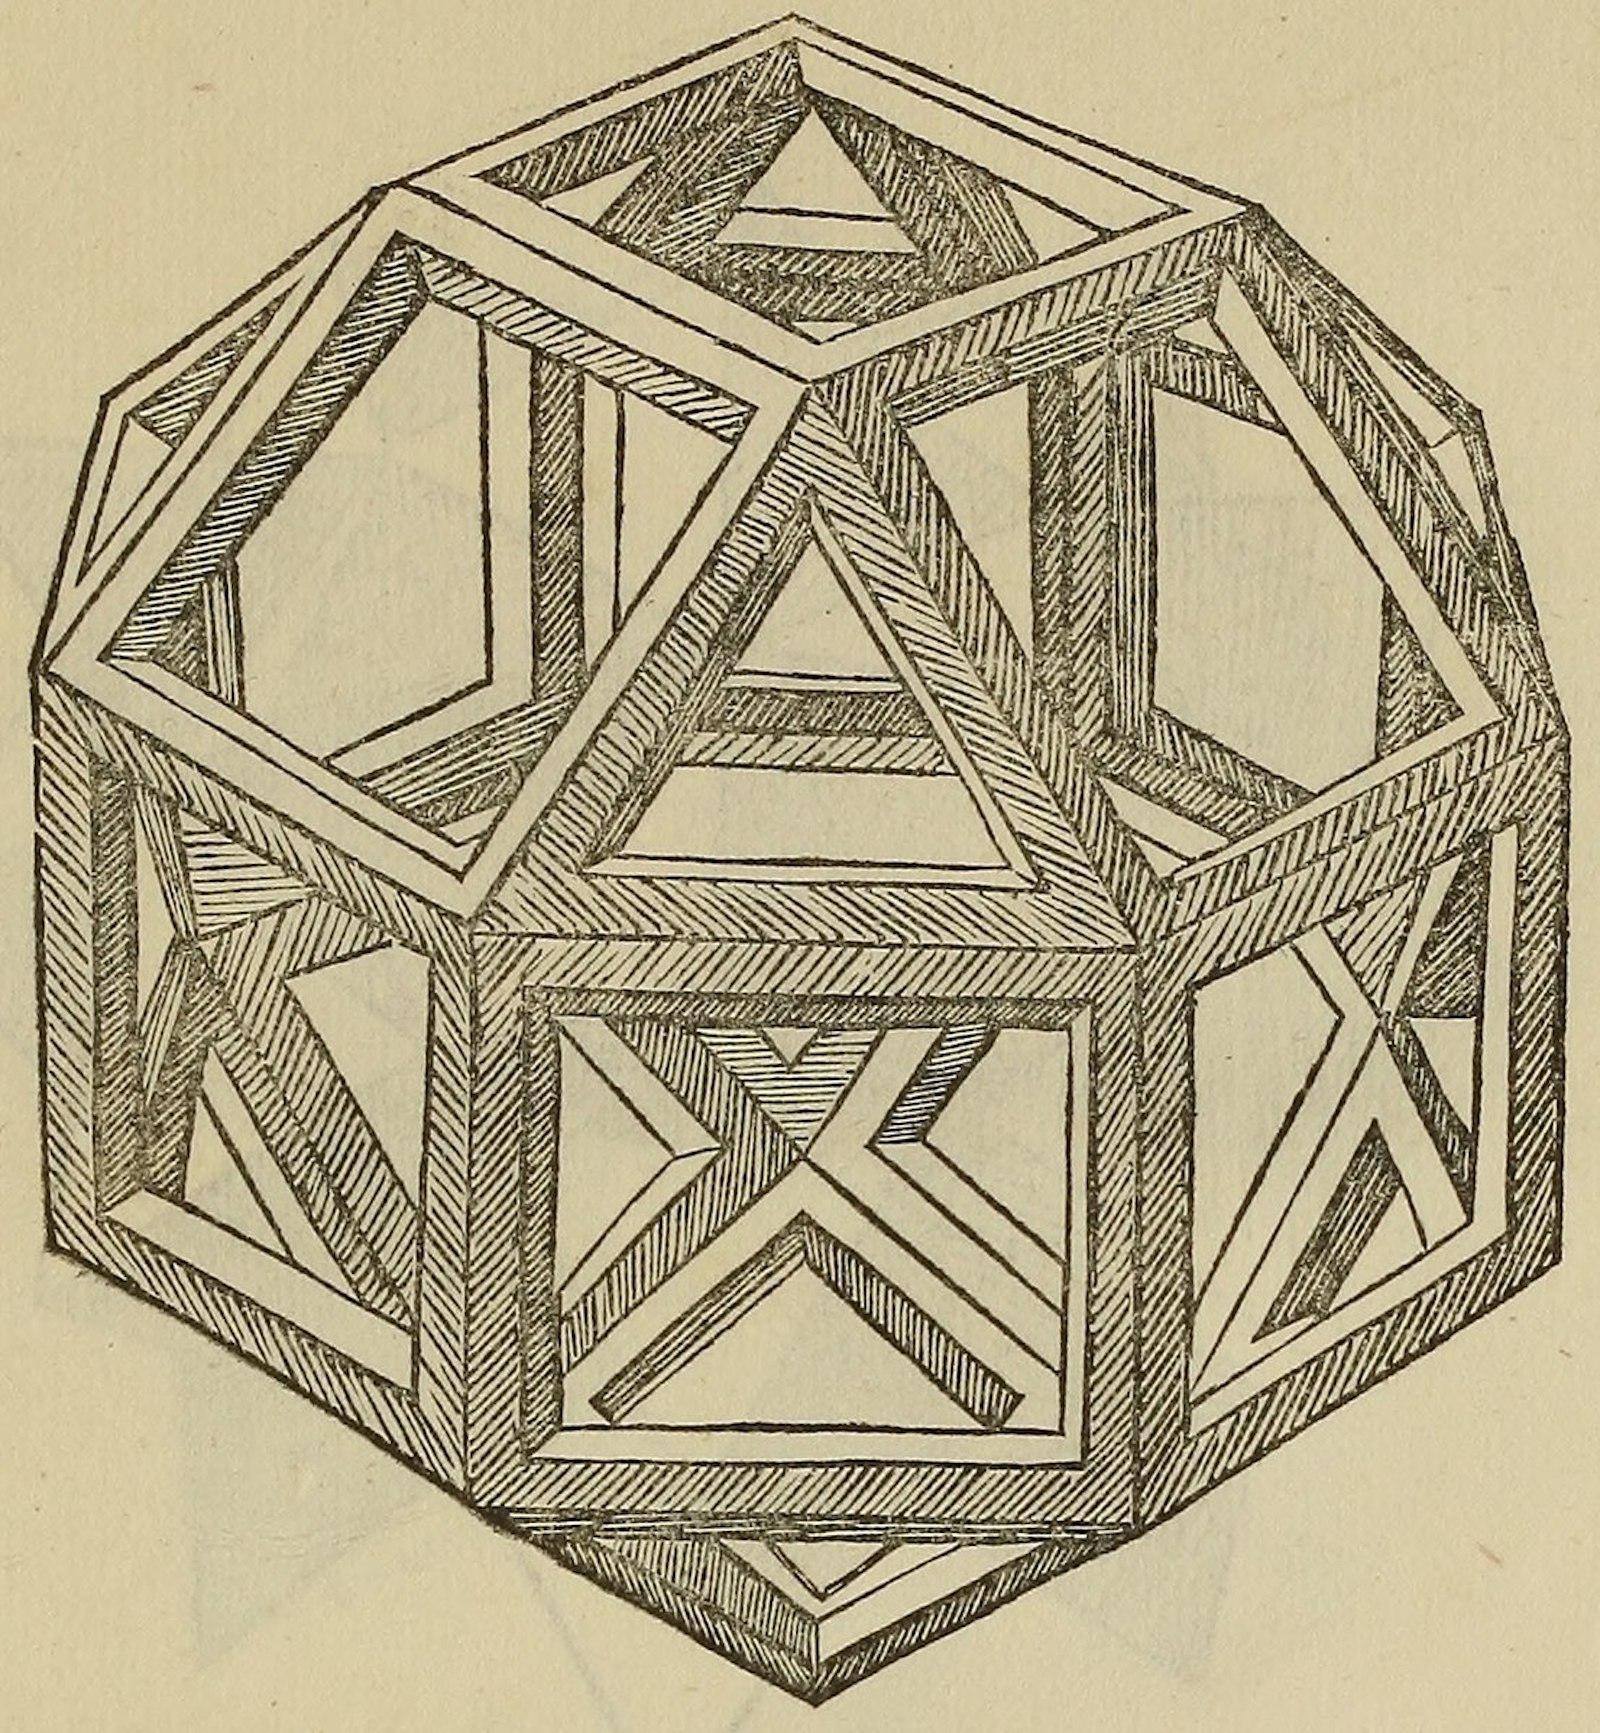 Geometric shape rendered as though it was constructed with bars in a hollow, cage-like fashion.